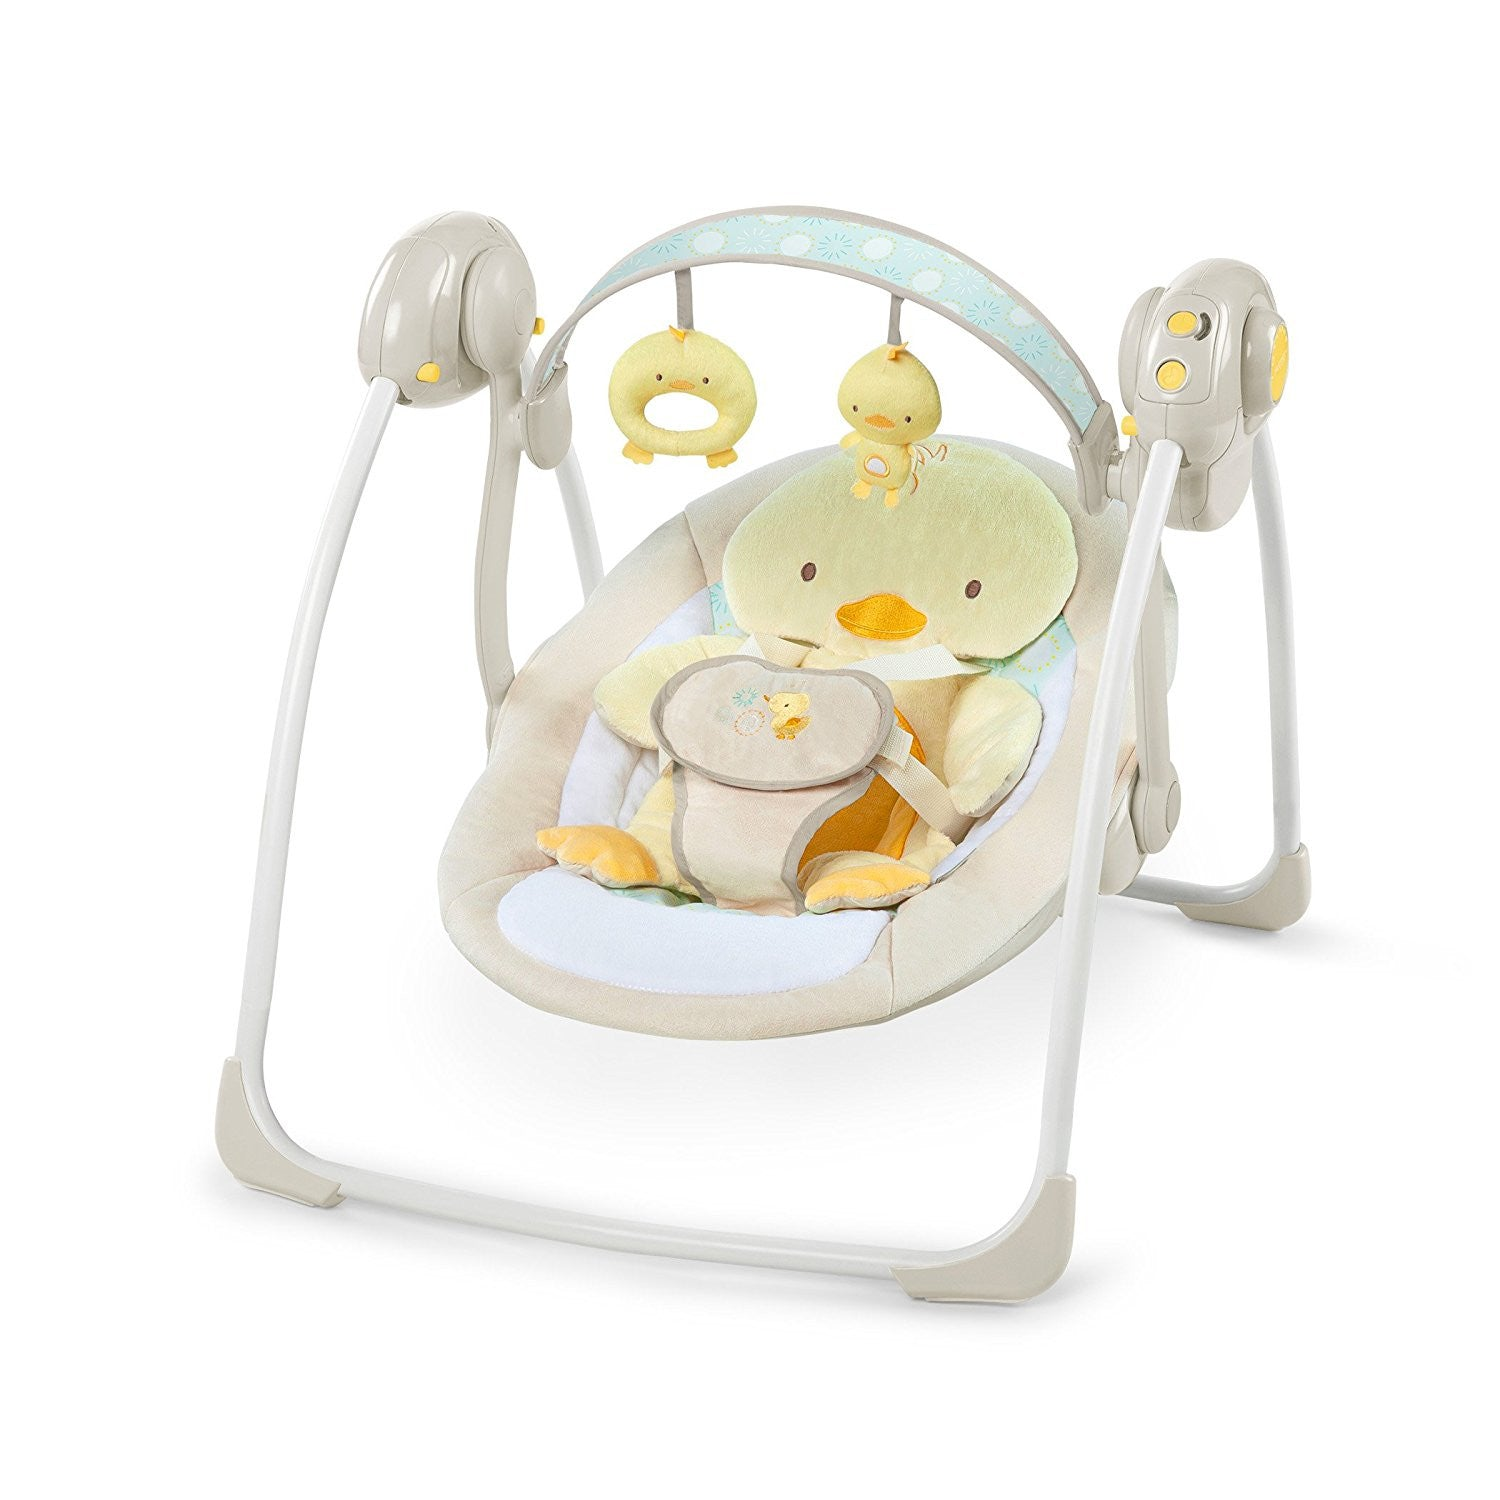 Https Daily Smilingrainbowco Bright Starts Ingenuity Smartbounce Automatic Bouncer Winslow Soothe Delight Protbale Swing Quacks Cuddles Babyv1477250206